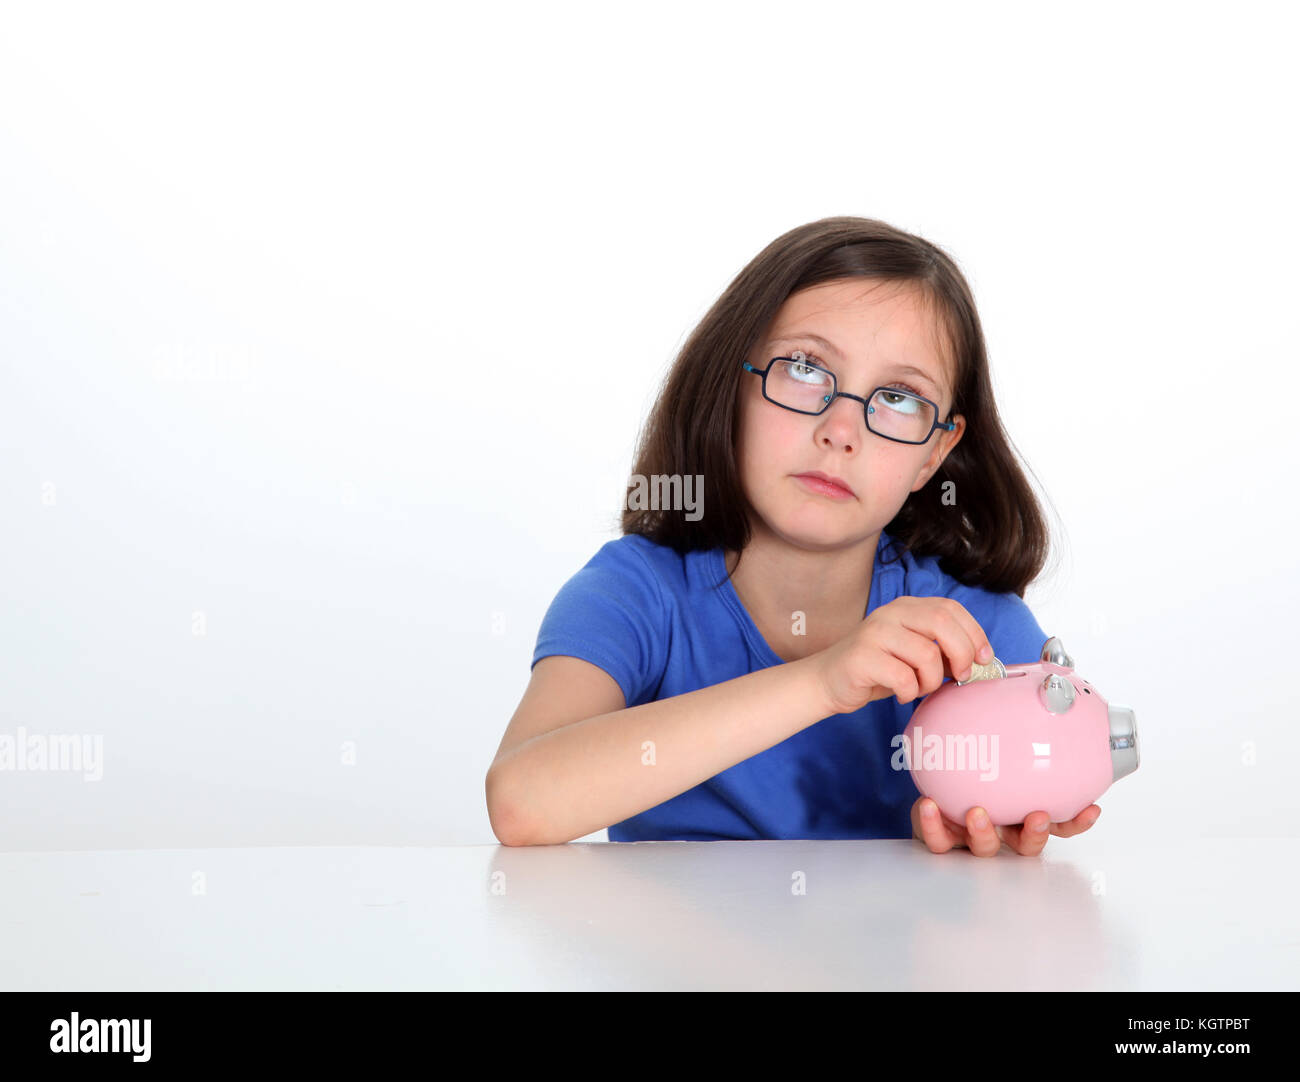 Little girl putting coin in piggybank - Stock Image